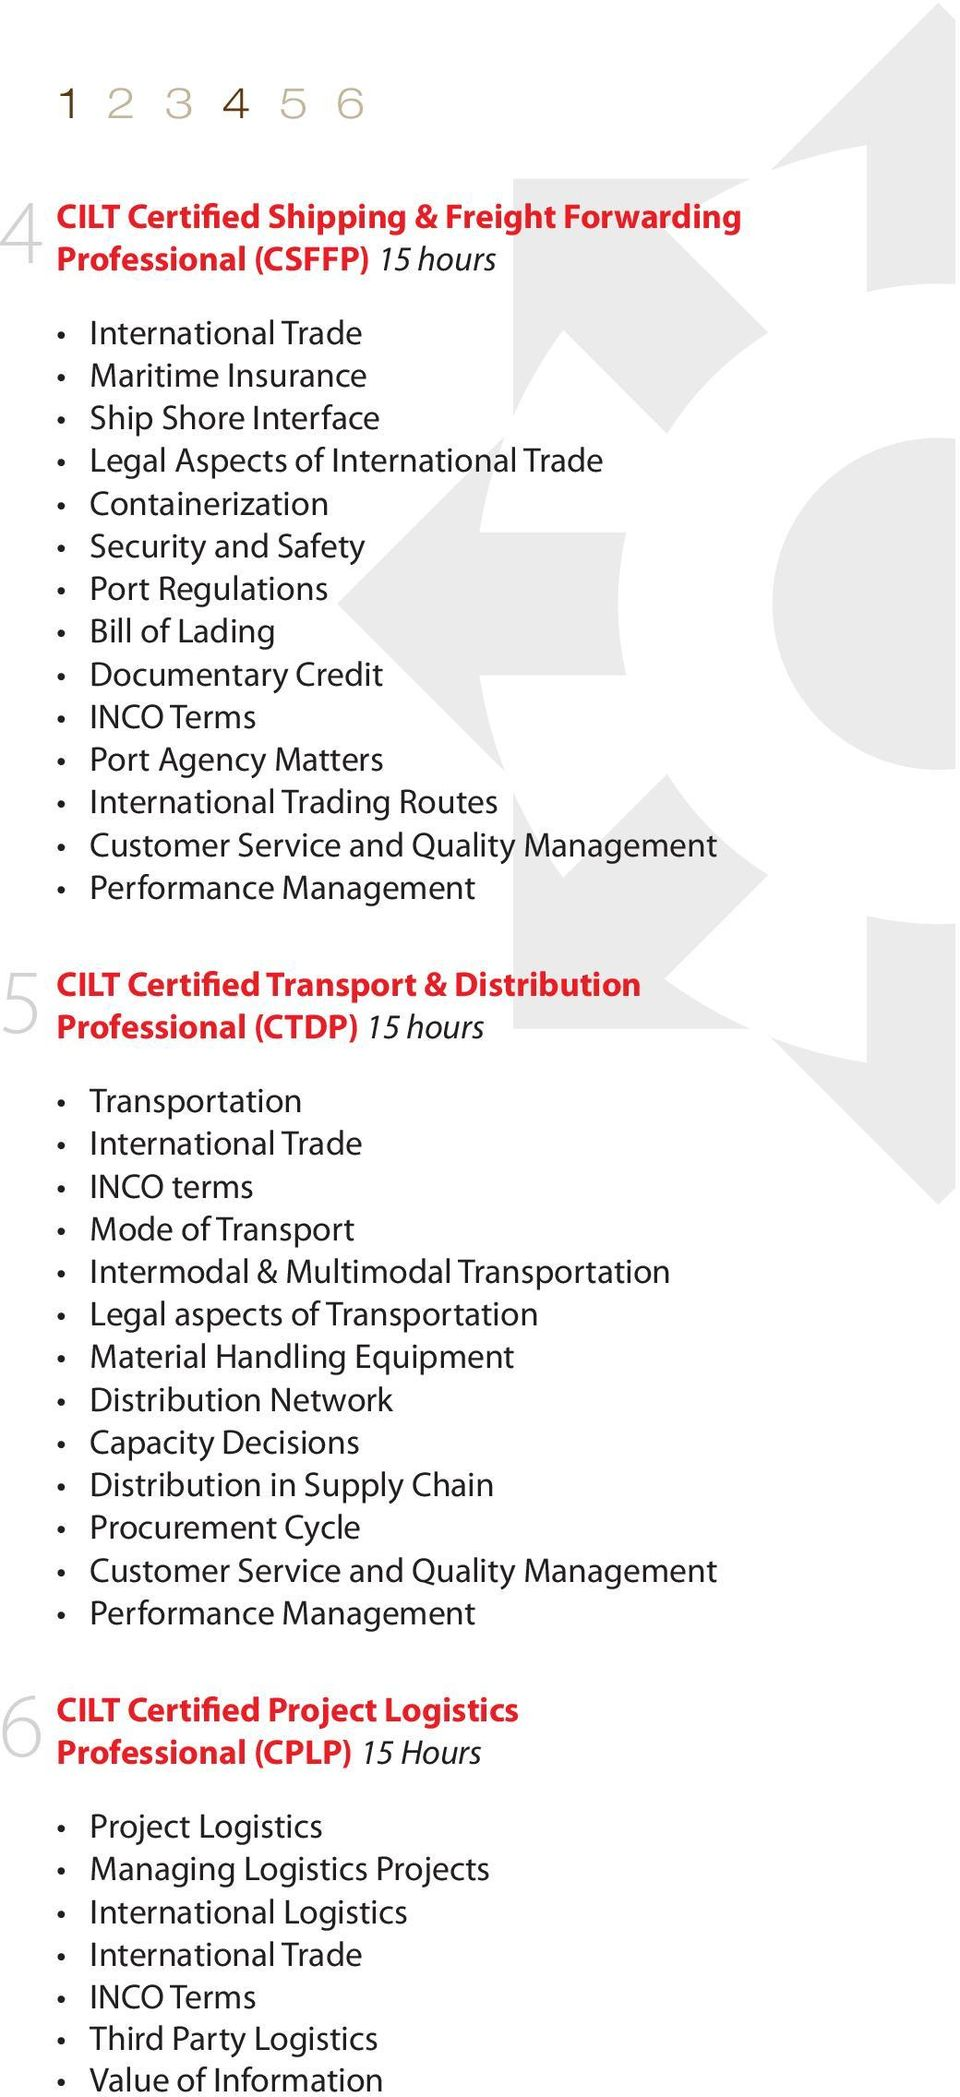 Professional (CTDP) 15 hours International Trade INCO terms Mode of Transport Intermodal & Multimodal Transportation Legal aspects of Transportation Material Handling Equipment Distribution Network